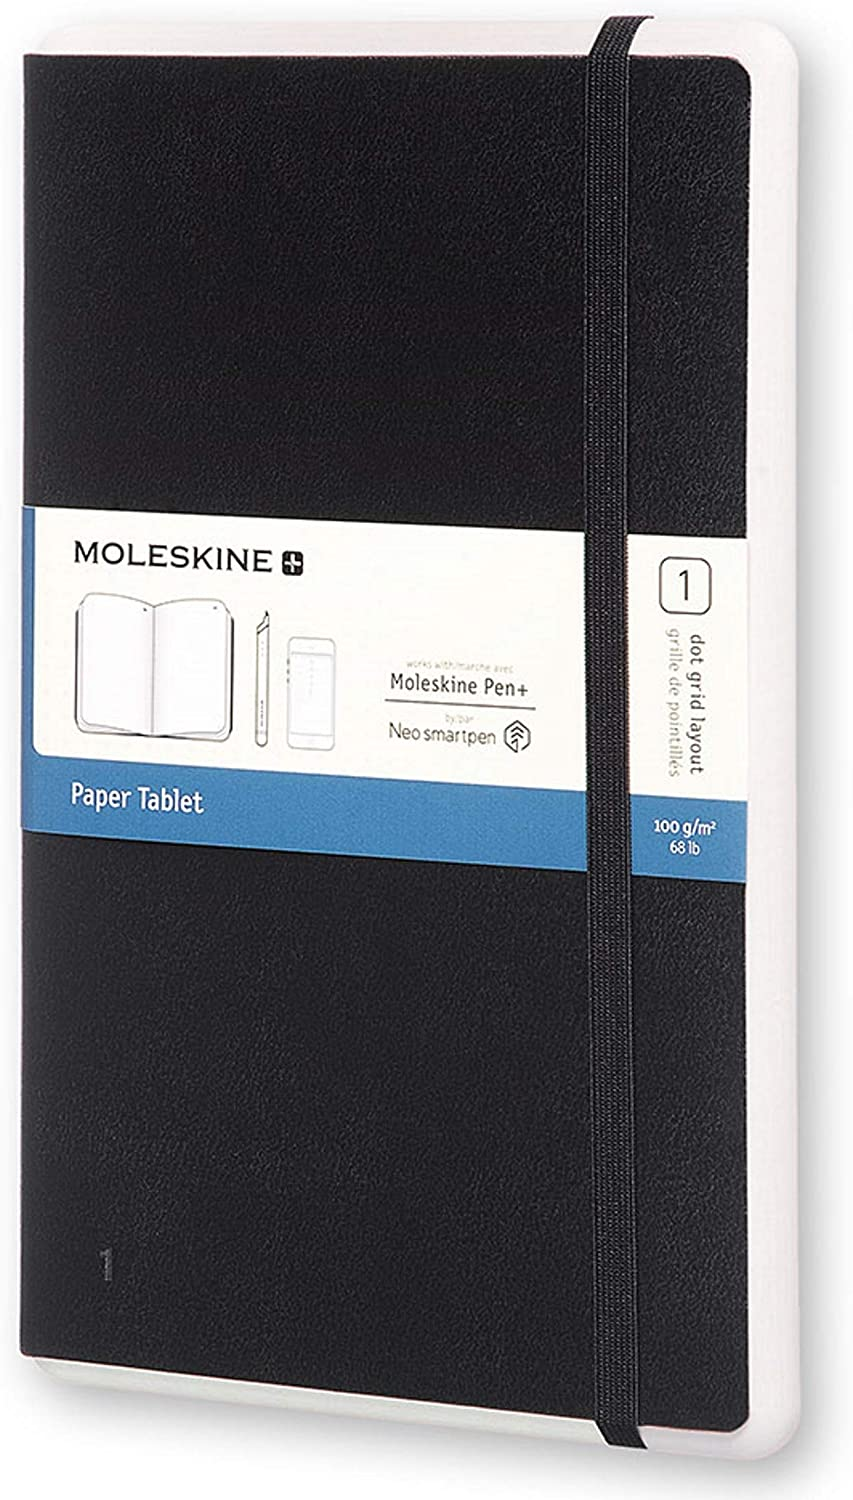 Moleskine Paper Tablet Hard Cover Smart Notebook Dotted 2 Large 5 X 8 25 Black Compatible W Moleskine Pen Ellipse Sold Separately App Digitize Organize Notes Bullet Journal Office Products